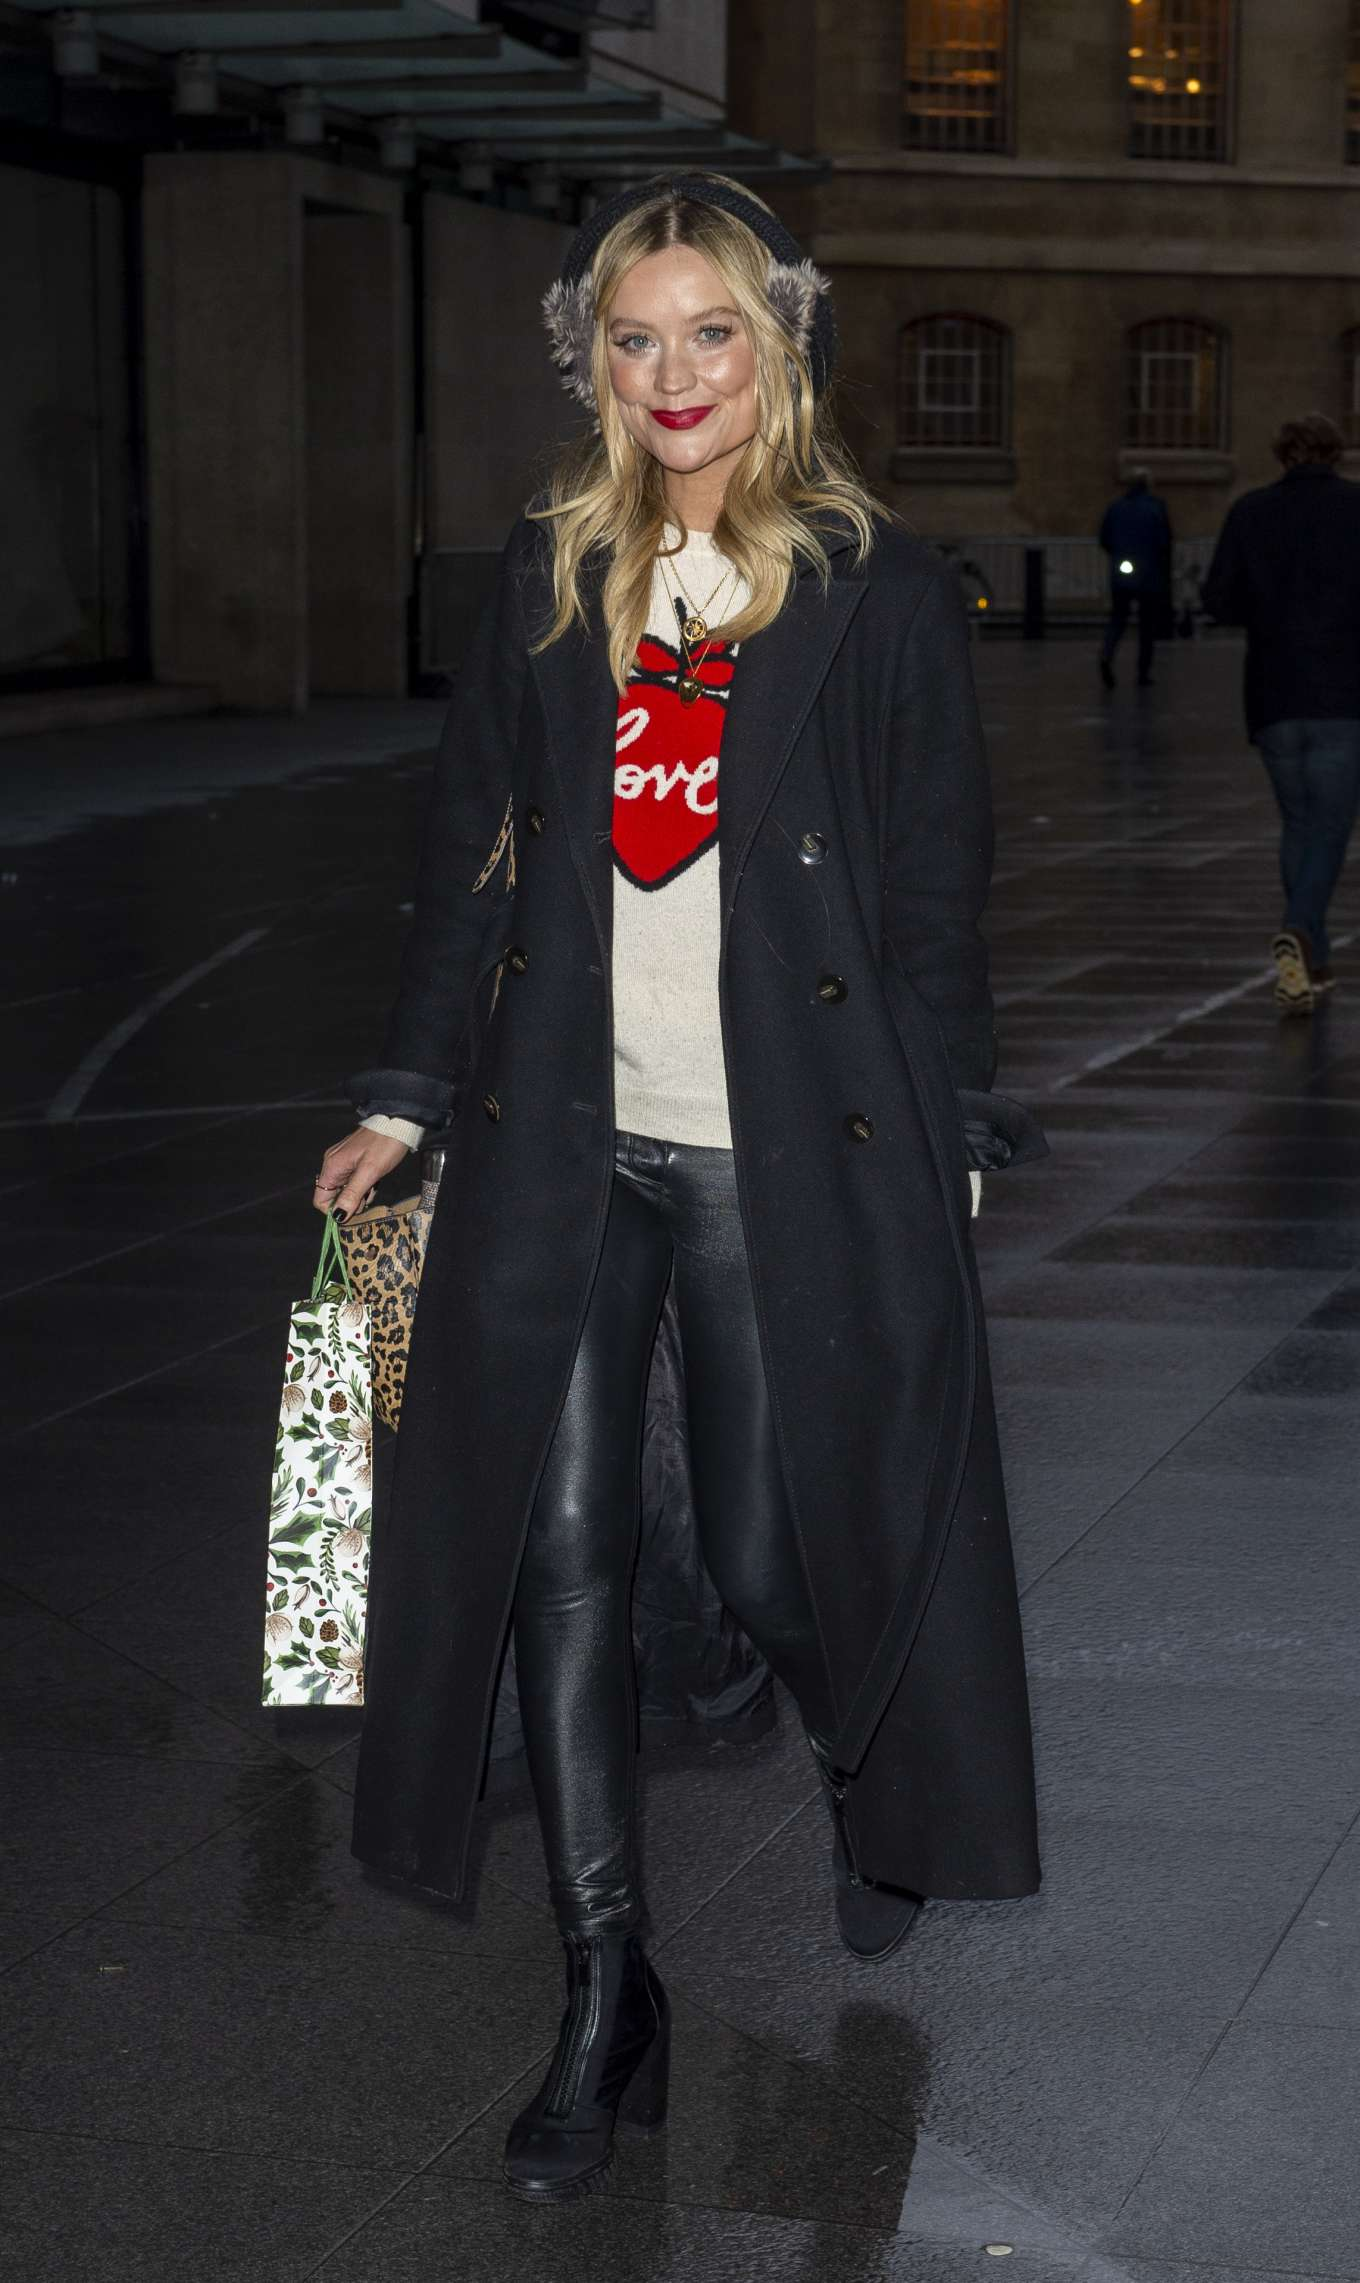 Laura Whitmore 2019 : Laura Whitmore – Arrives at BBC Radio 5 Live show-05